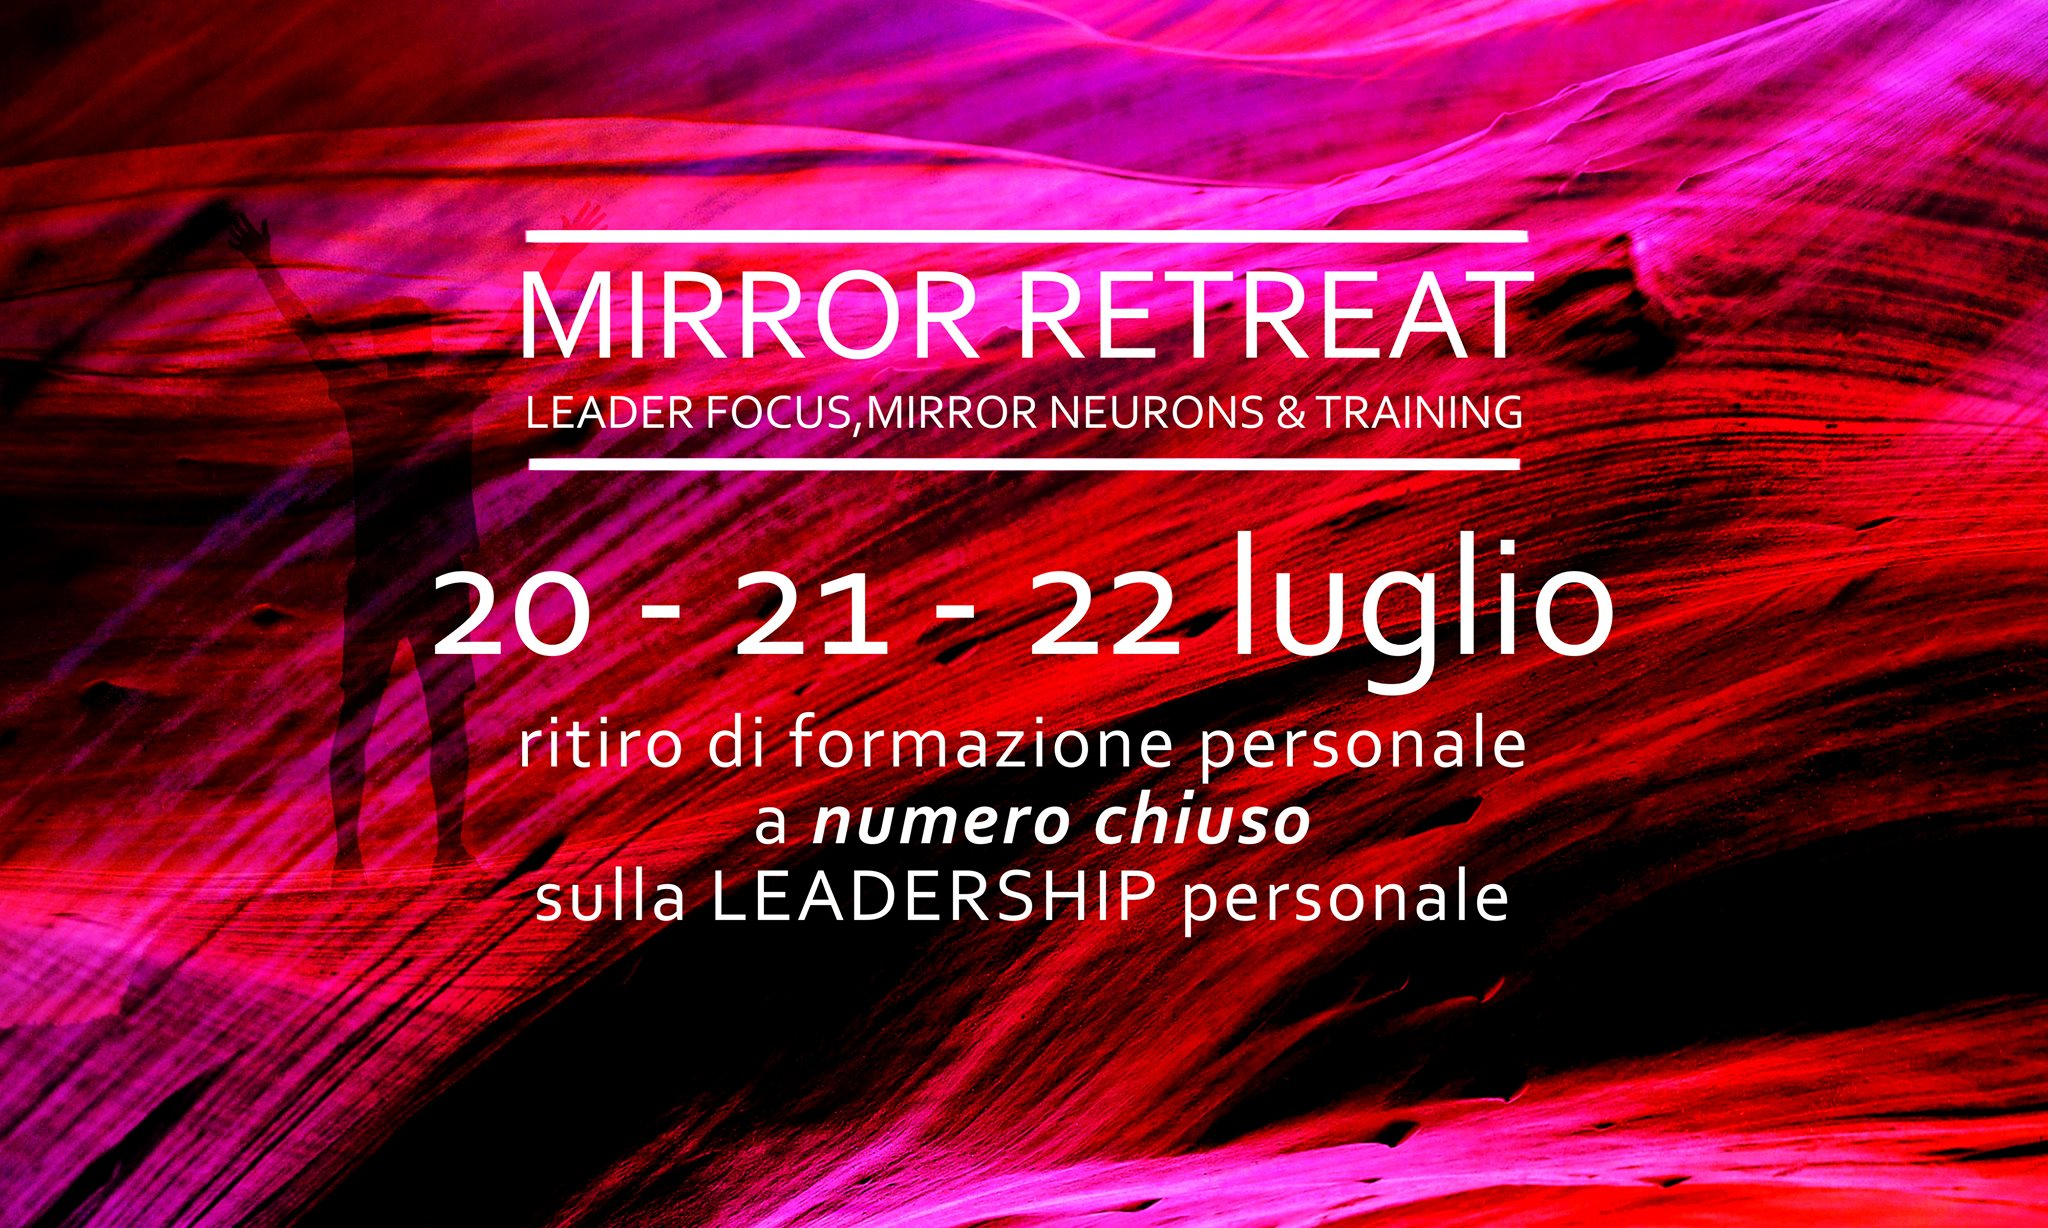 MIRROR RETREAT Leader Focus, Mirror Neurons & Training